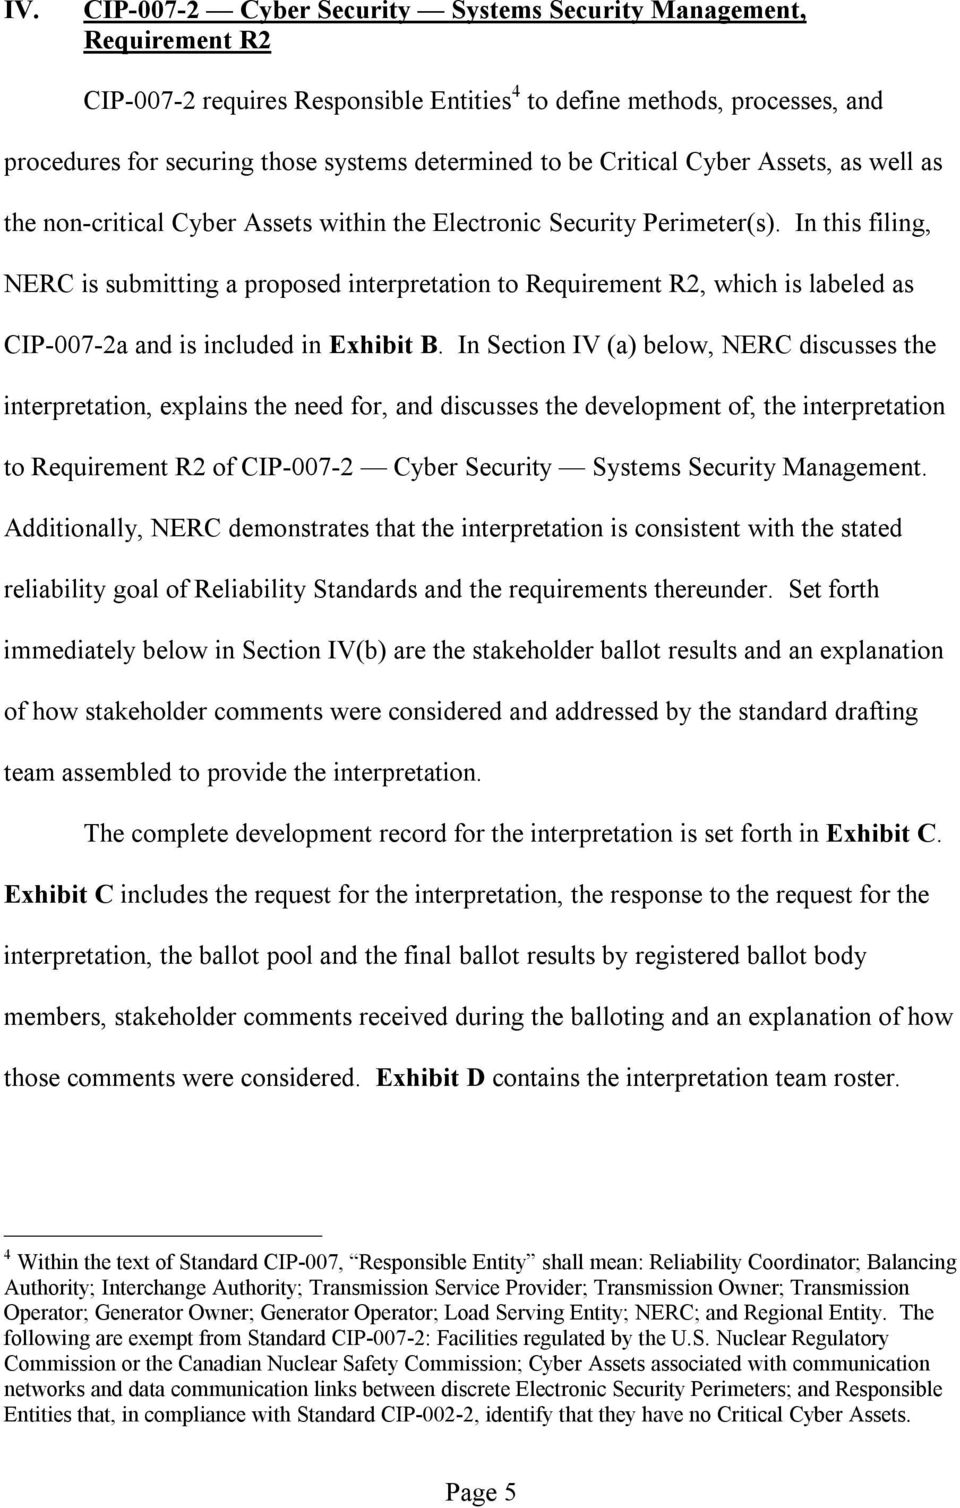 In this filing, NERC is submitting a proposed interpretation to Requirement R2, which is labeled as CIP-007-2a and is included in Exhibit B.